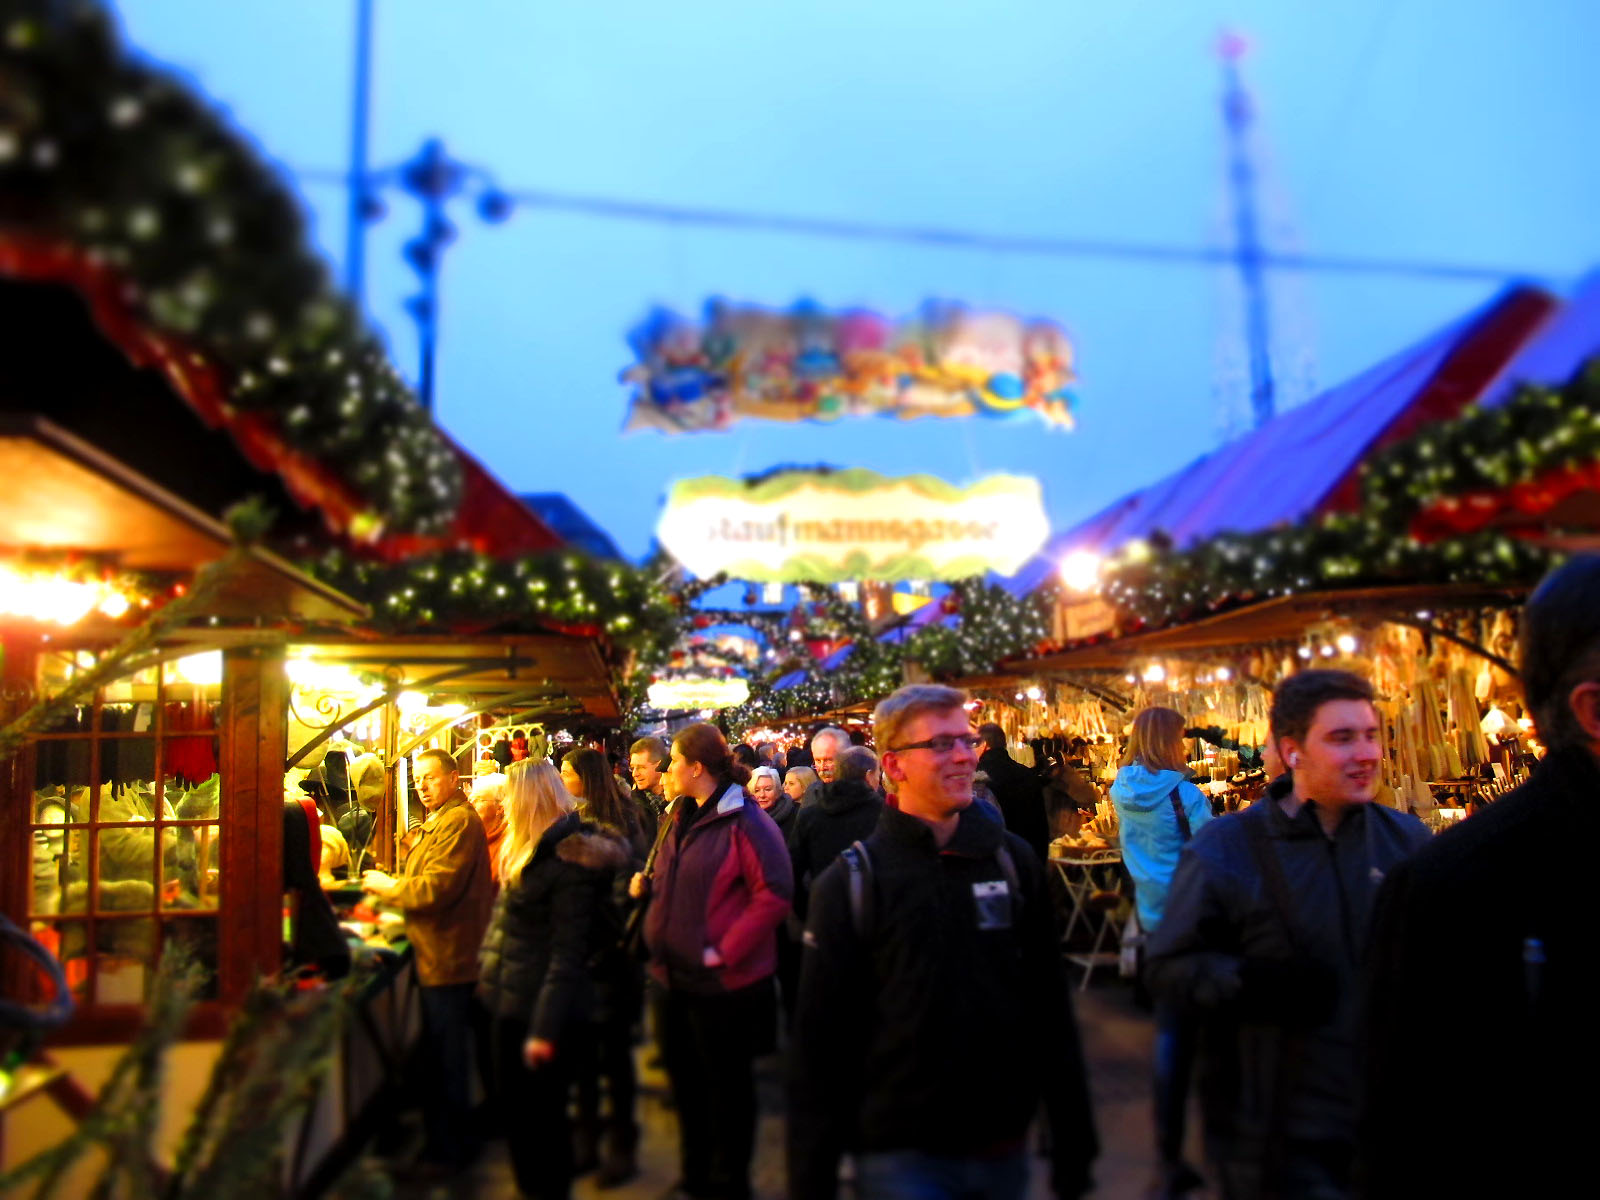 The atmosphere at a Christmas market in Hamburg © Kristi Fuoco